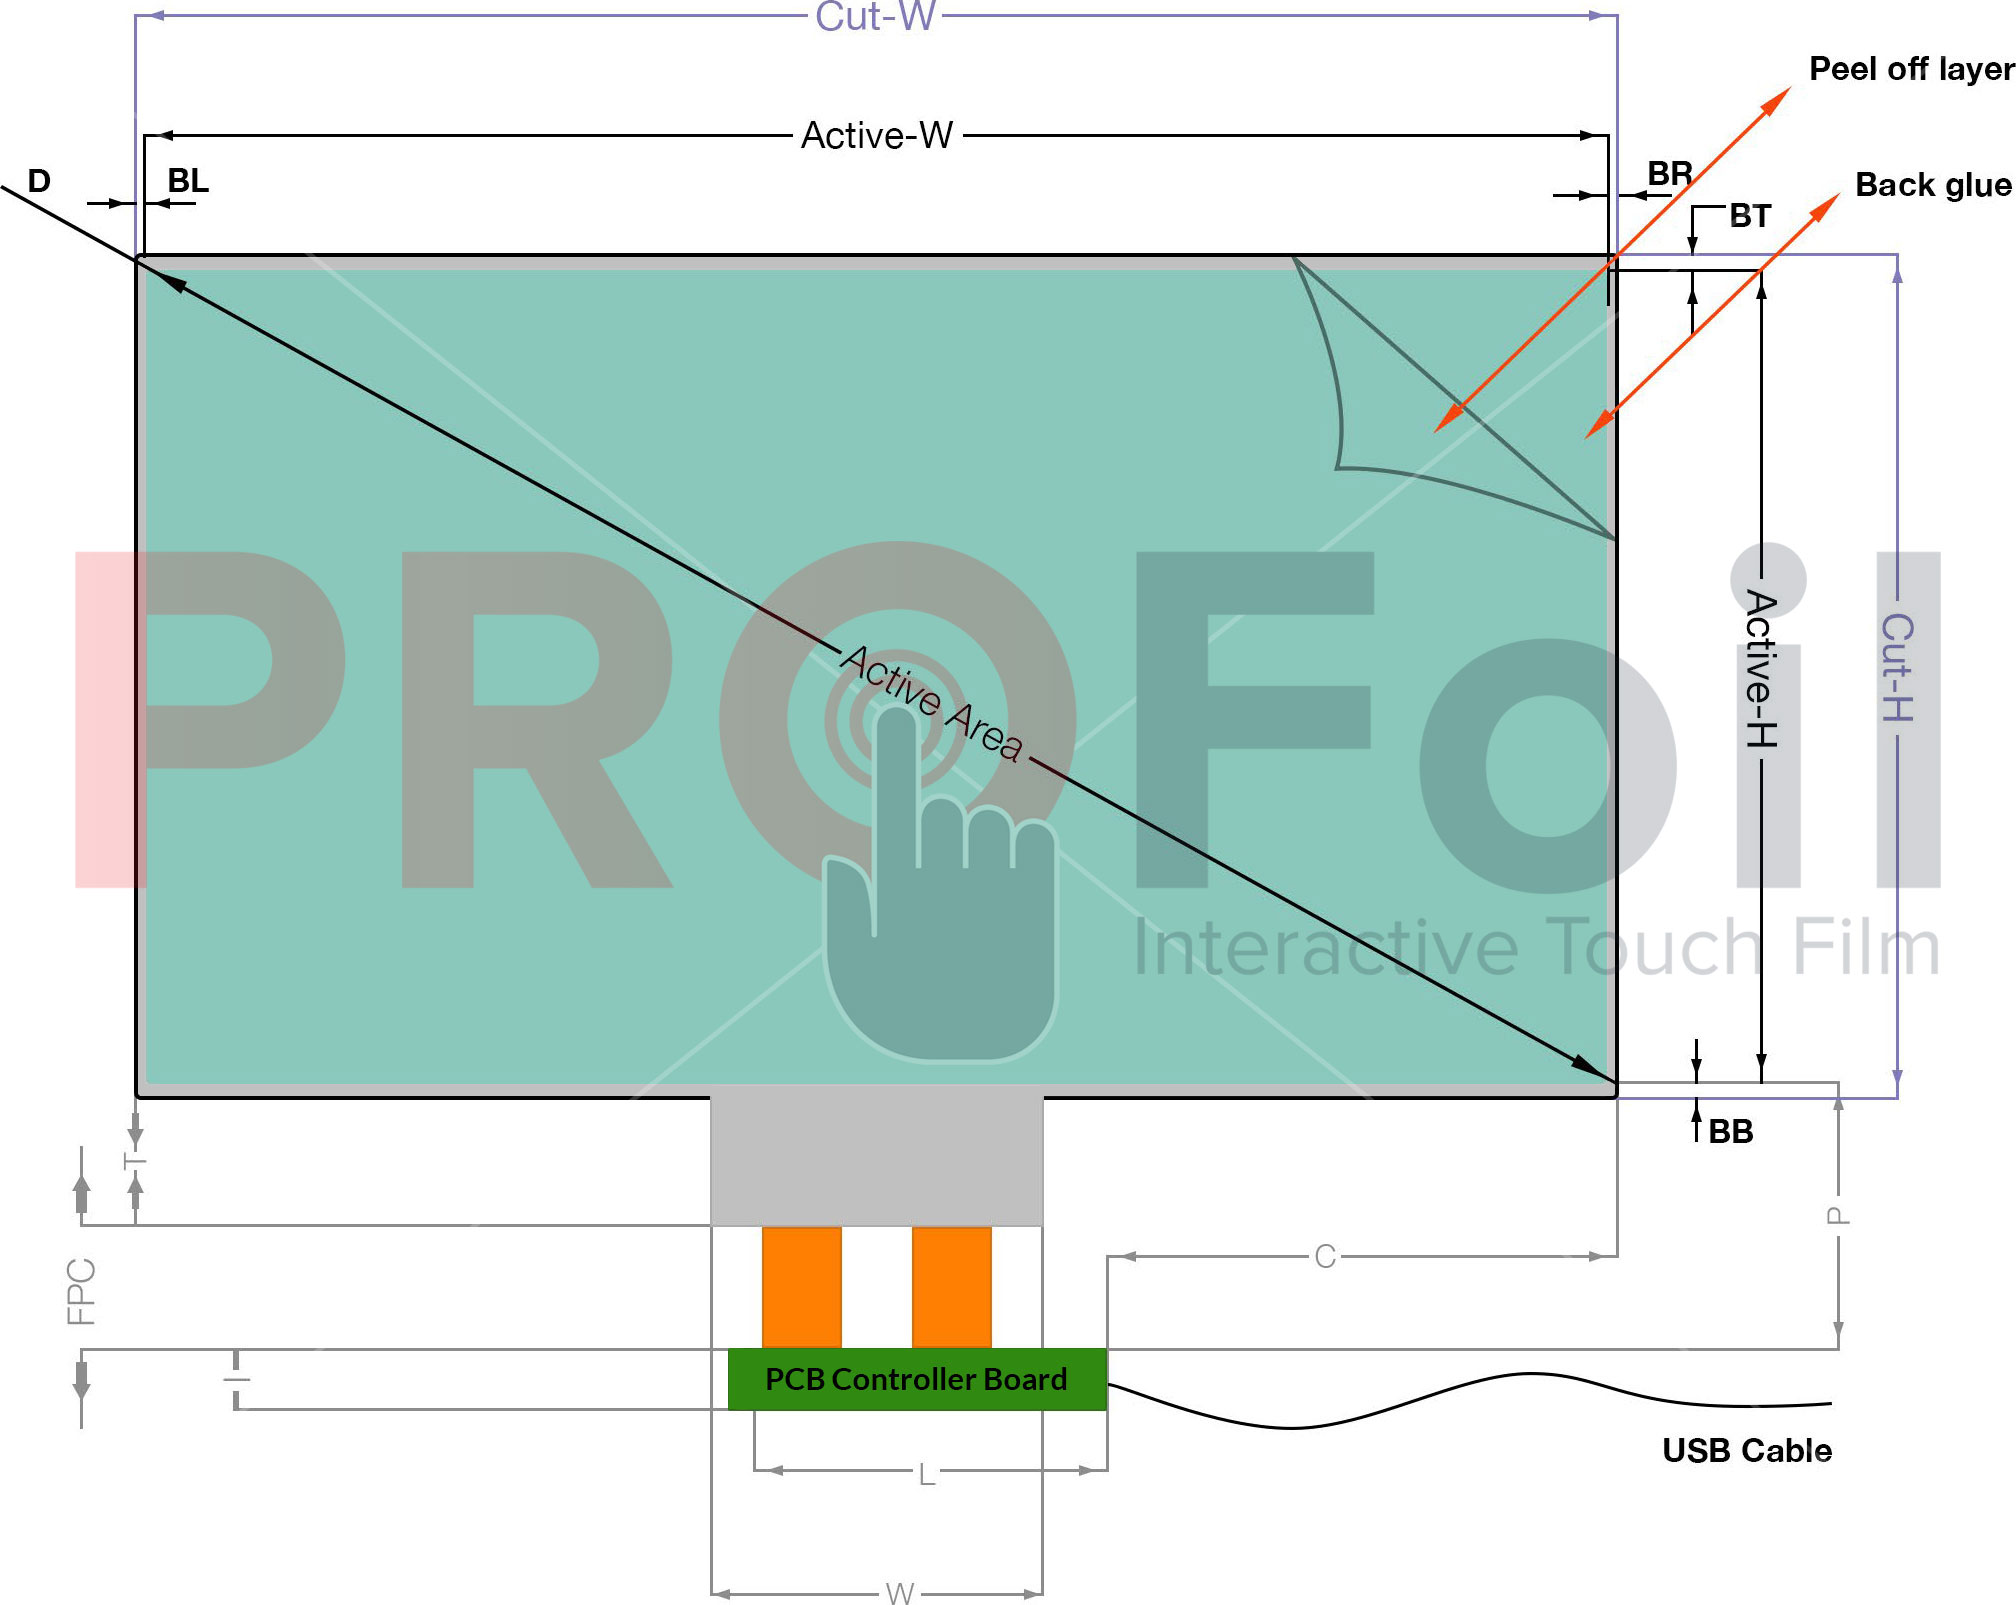 profoil multitouch long side tail drawing